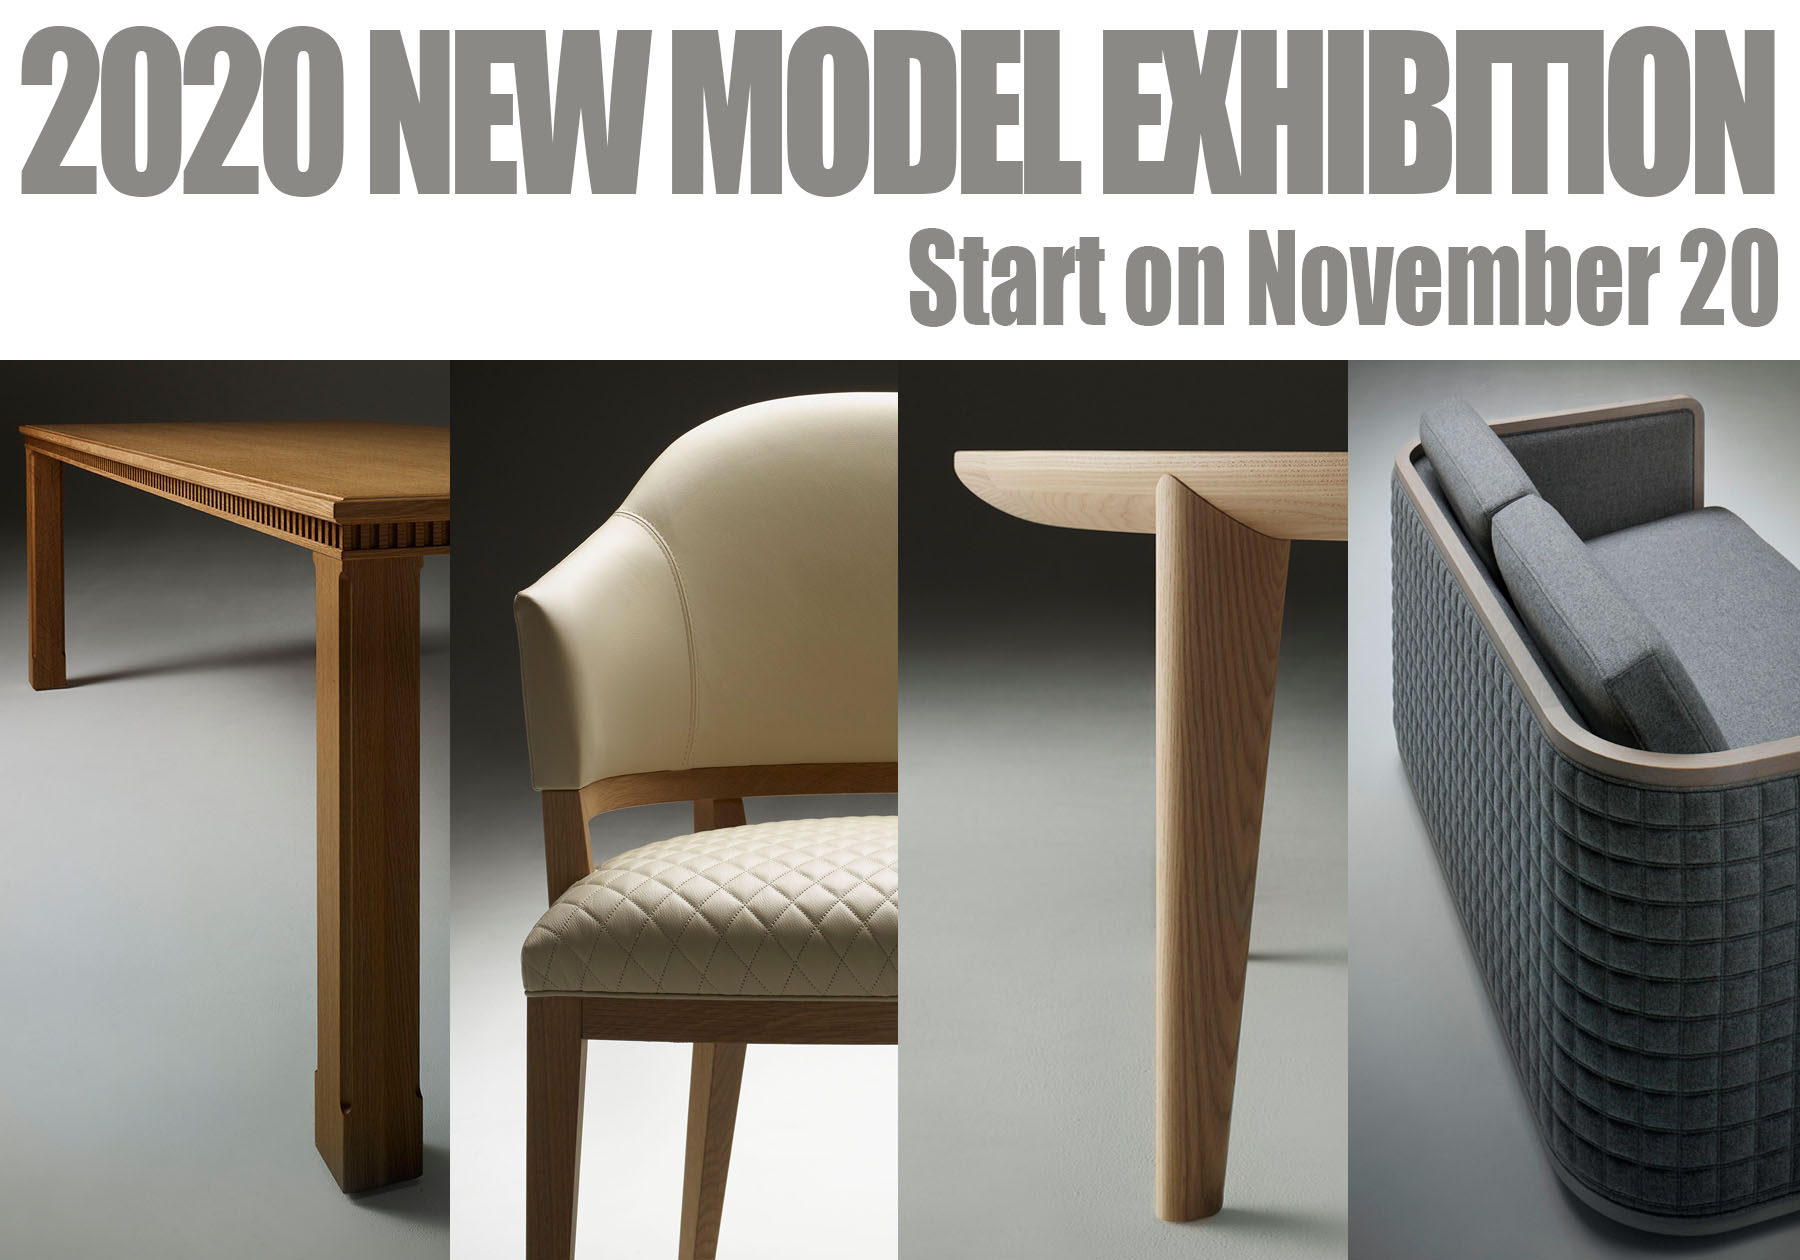 2020 NEW MODEL EXHIBITION